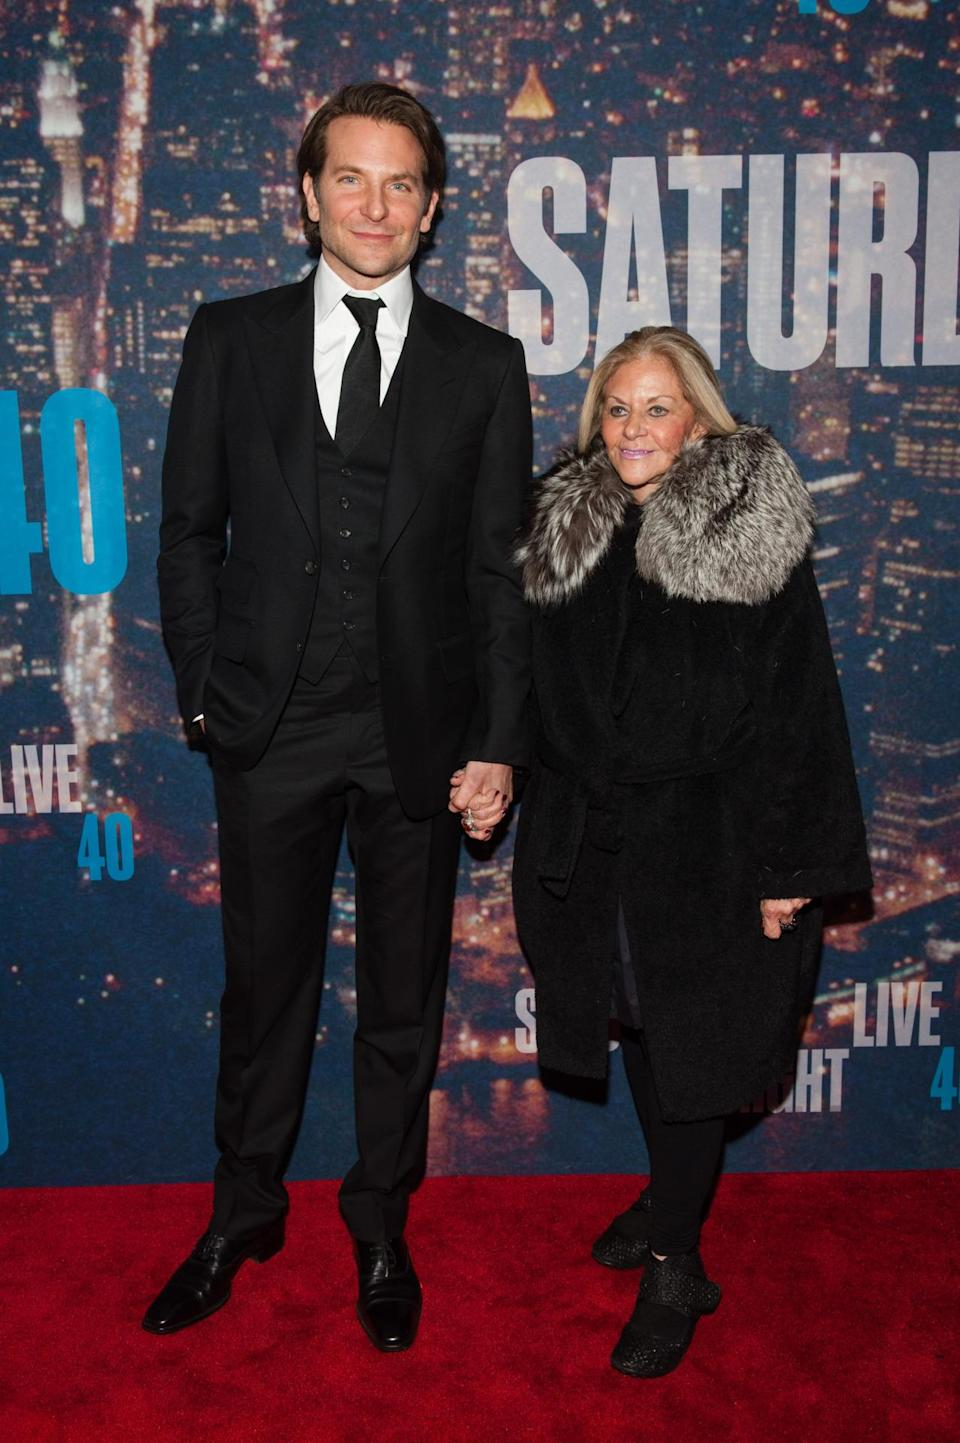 Bradley Cooper took a break from Broadway and Oscar campaigning to escort his mother, Gloria Campano, to the retrospective.